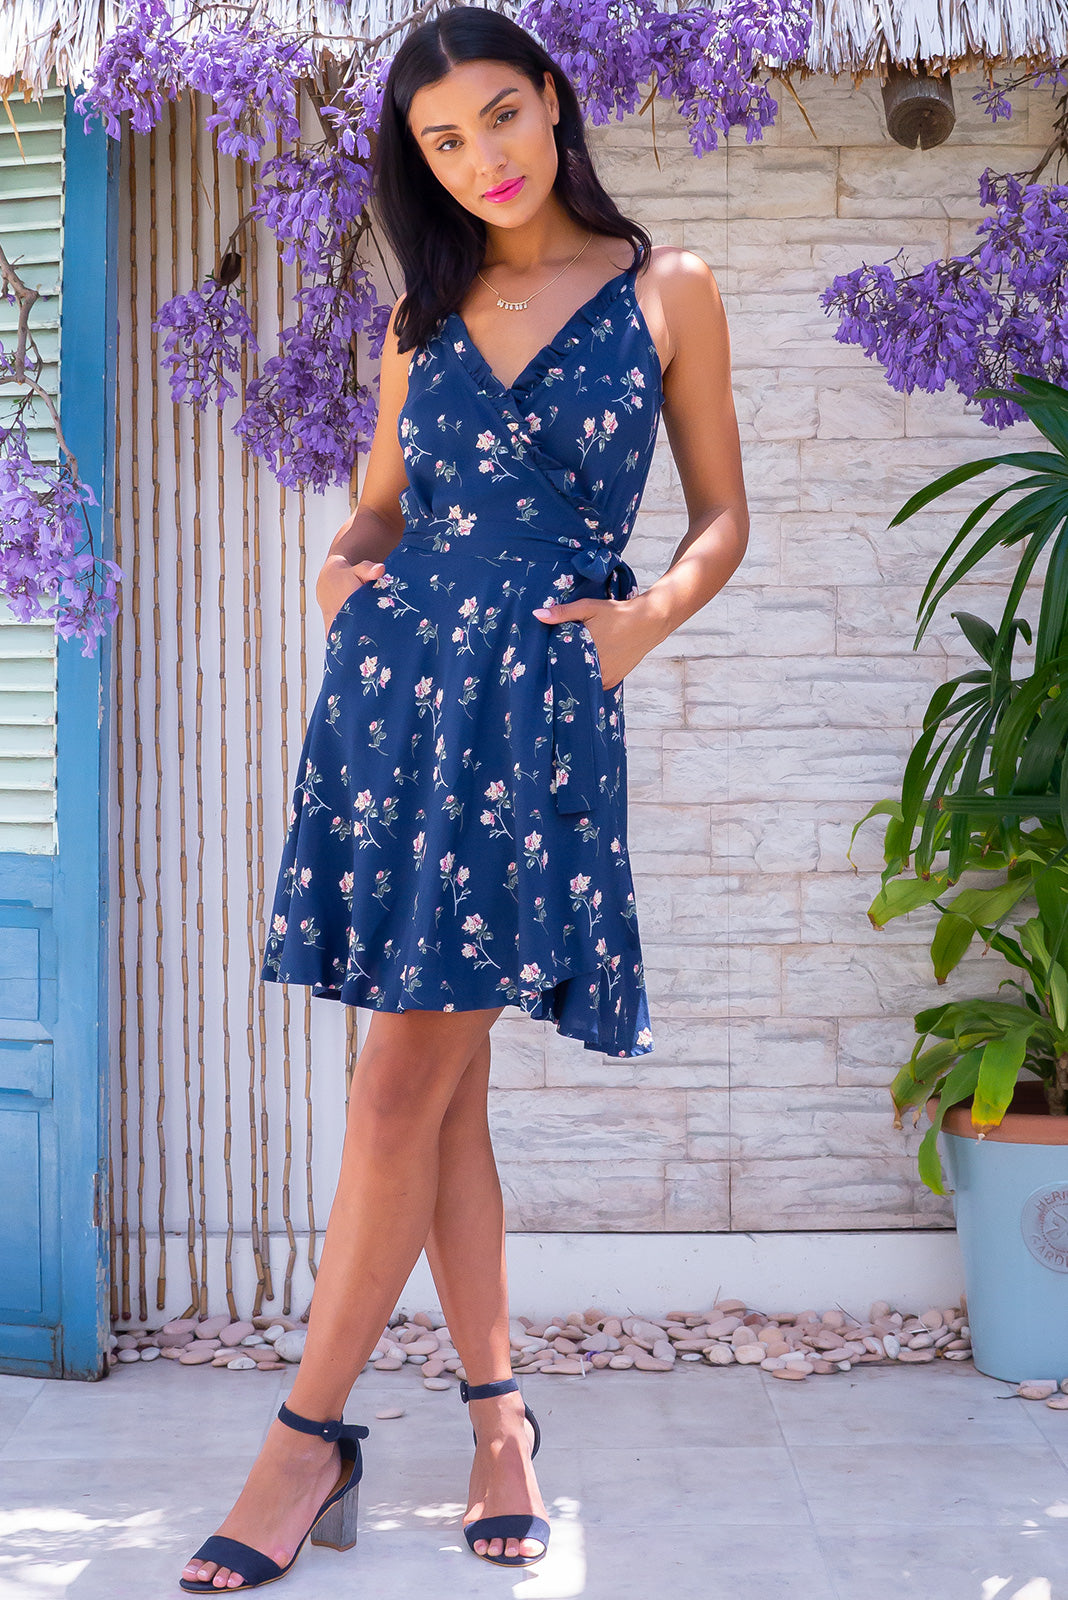 The Cappella Blue Roses Wrap Dress is a flirty and feminine frock featuring  frill detail over bust, adjustable straps, side pockets, functional wrap design with tie waist and 100% viscose in muted sapphire blue with romantic roses print.